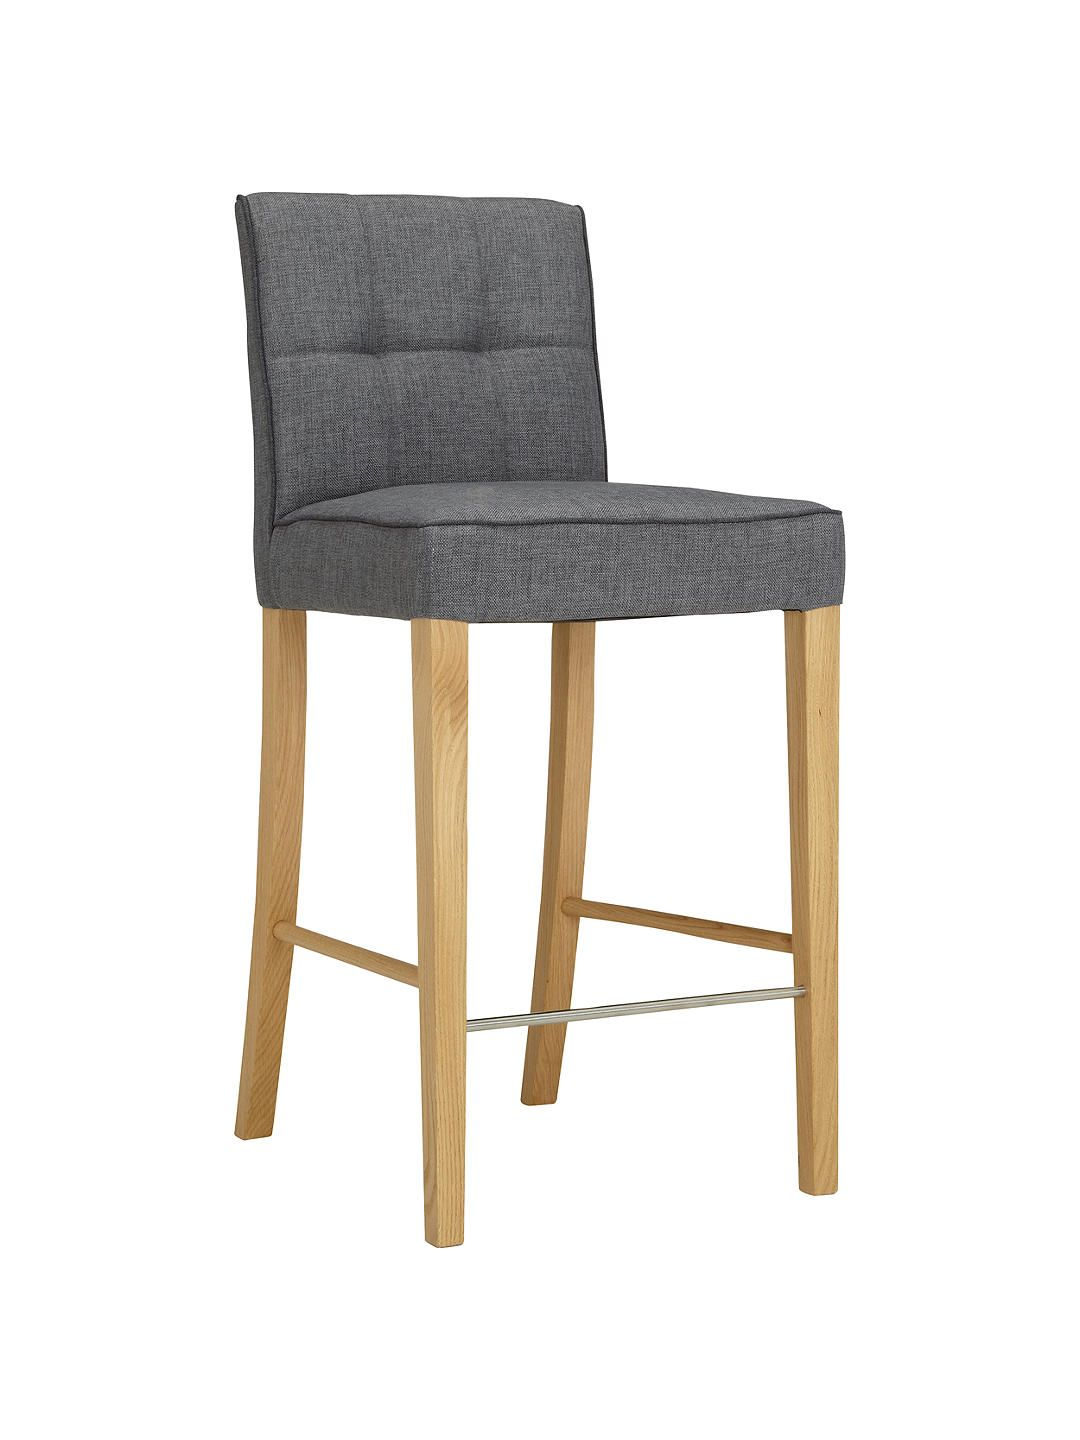 Fabulous John Lewis Partners Simone Bar Chair Grey In 2019 Bar Gmtry Best Dining Table And Chair Ideas Images Gmtryco